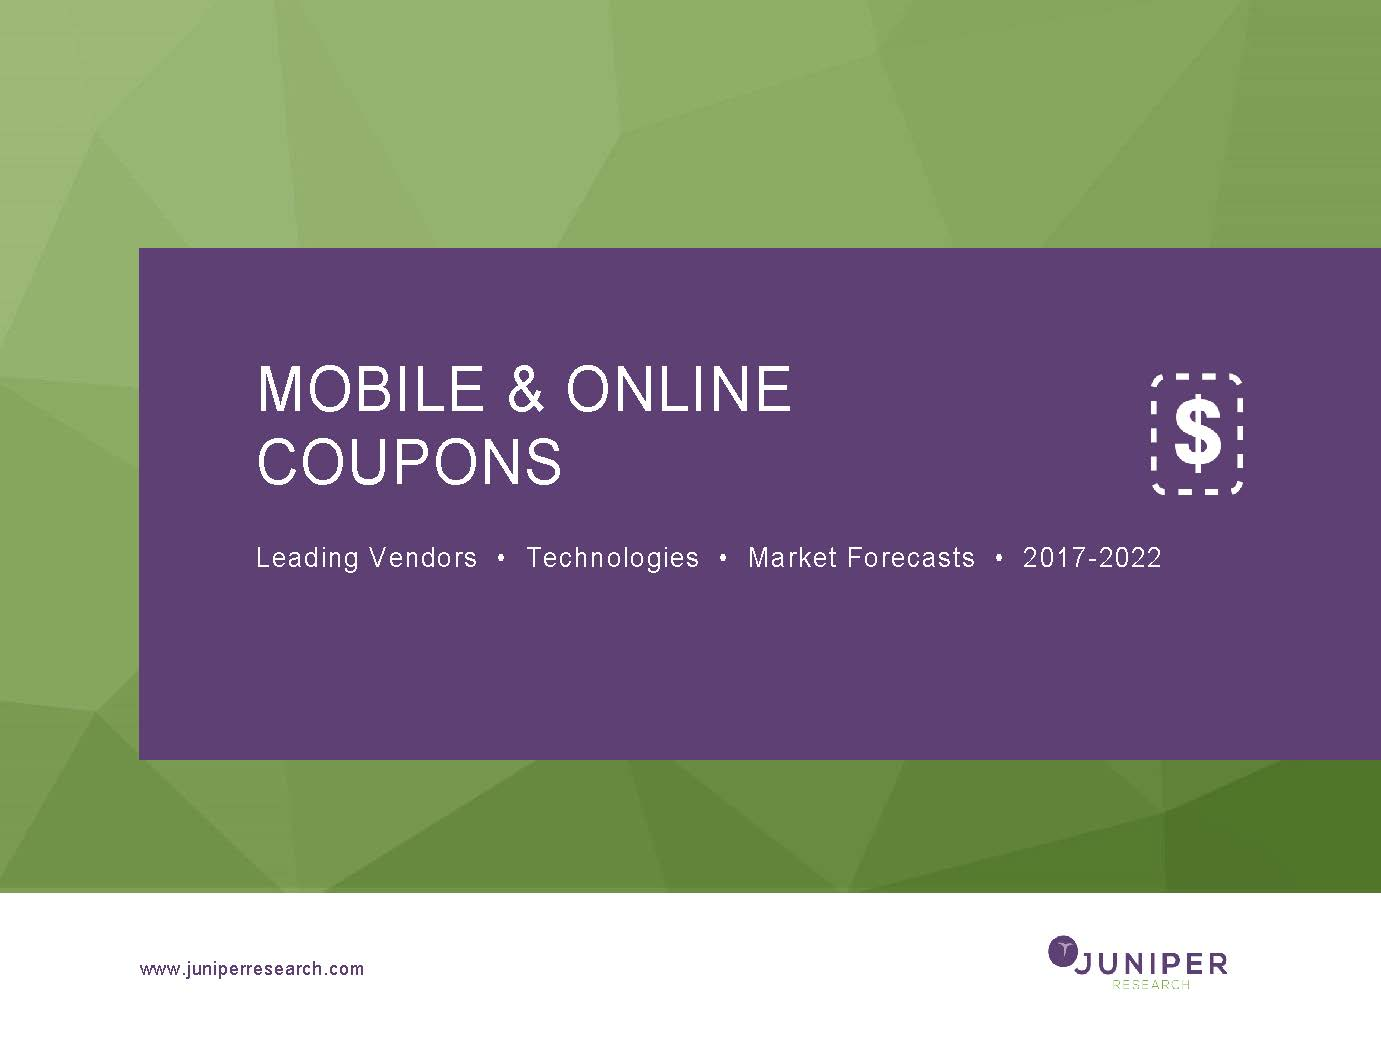 Mobile & Online Coupons - Executive Summary & Core Findings 2017-2022